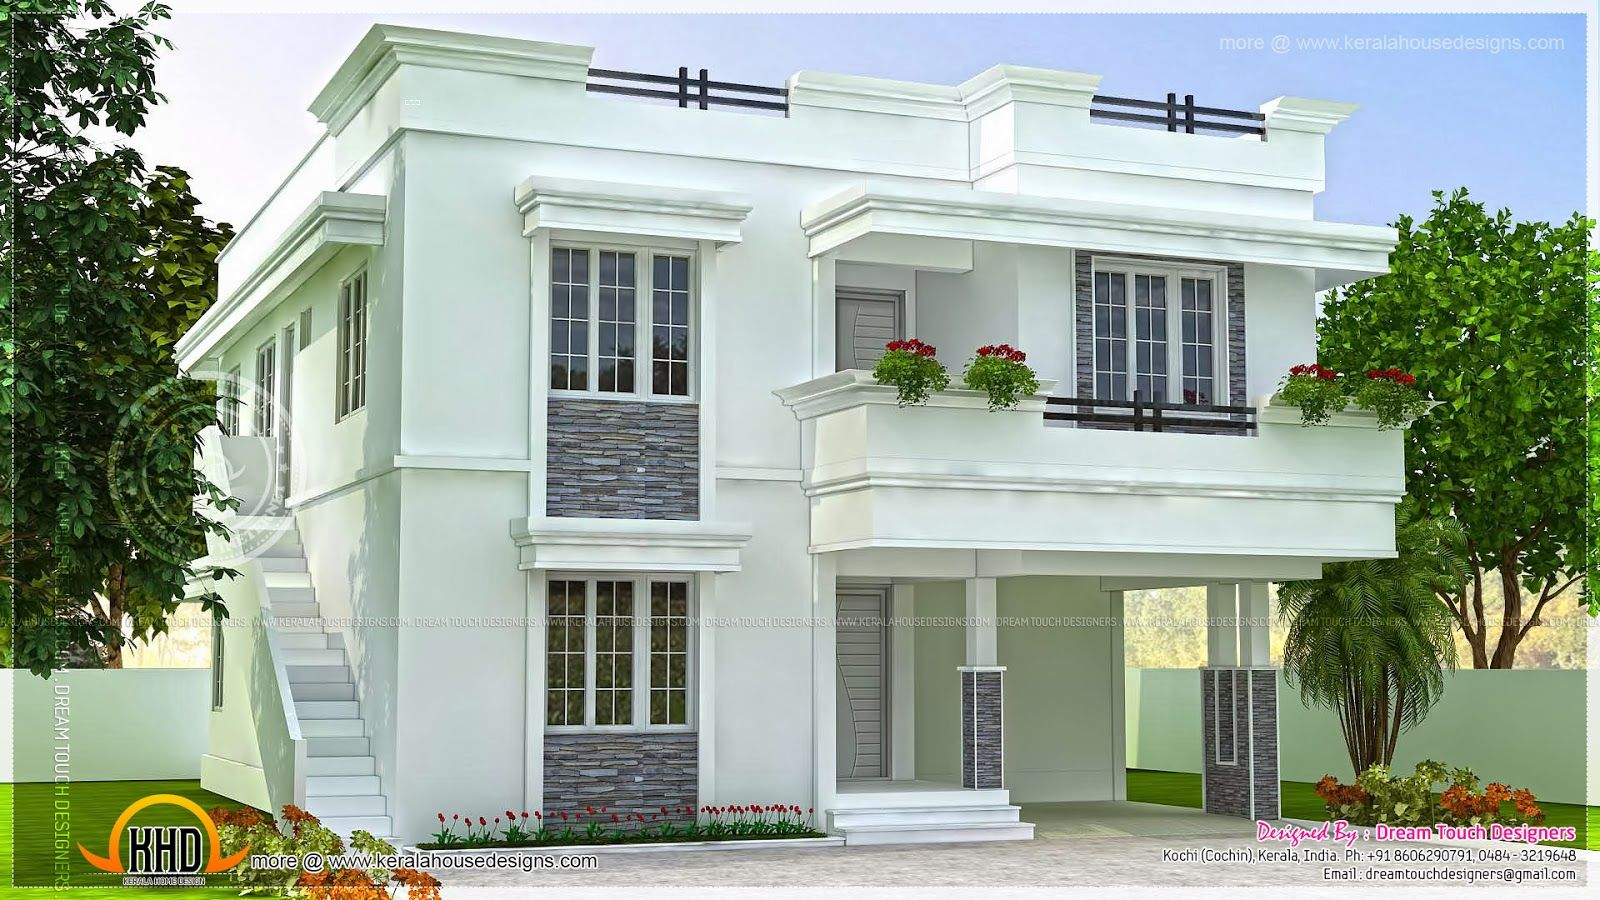 Modern beautiful home modern beautiful home design indian Indian model house plan design